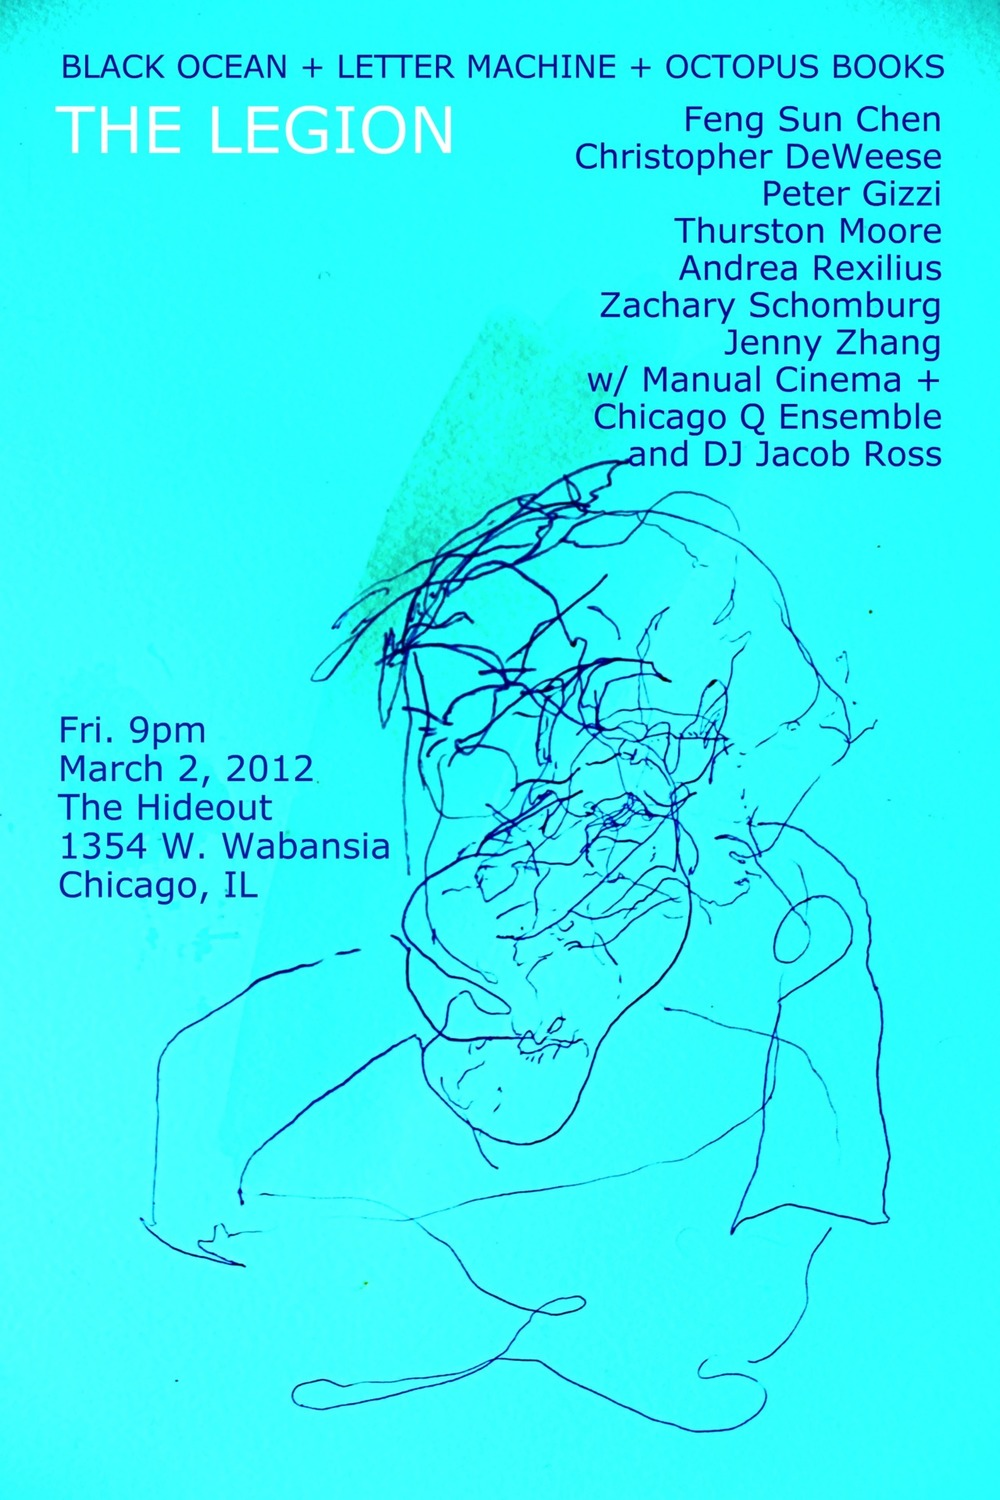 I'm hosting (for  Octopus Books ) and reading (for  Black Ocean ) on Friday night during the AWP conference at  The Hideout . Black Ocean,  Letter Machine , Octopus Books. 9pm. w/Feng Sun Chen, Christopher DeWeese, Peter Gizzi, Thurston Moore, Andrea Rexilius, myself, and Jenny Zhang. The  Chicago Q Ensemble  and  Manual Cinema  will reprise a version of their stage performance, FJORDS, at the Poetry Foundation a week prior. And DJ Jacob Ross will bring it all home.